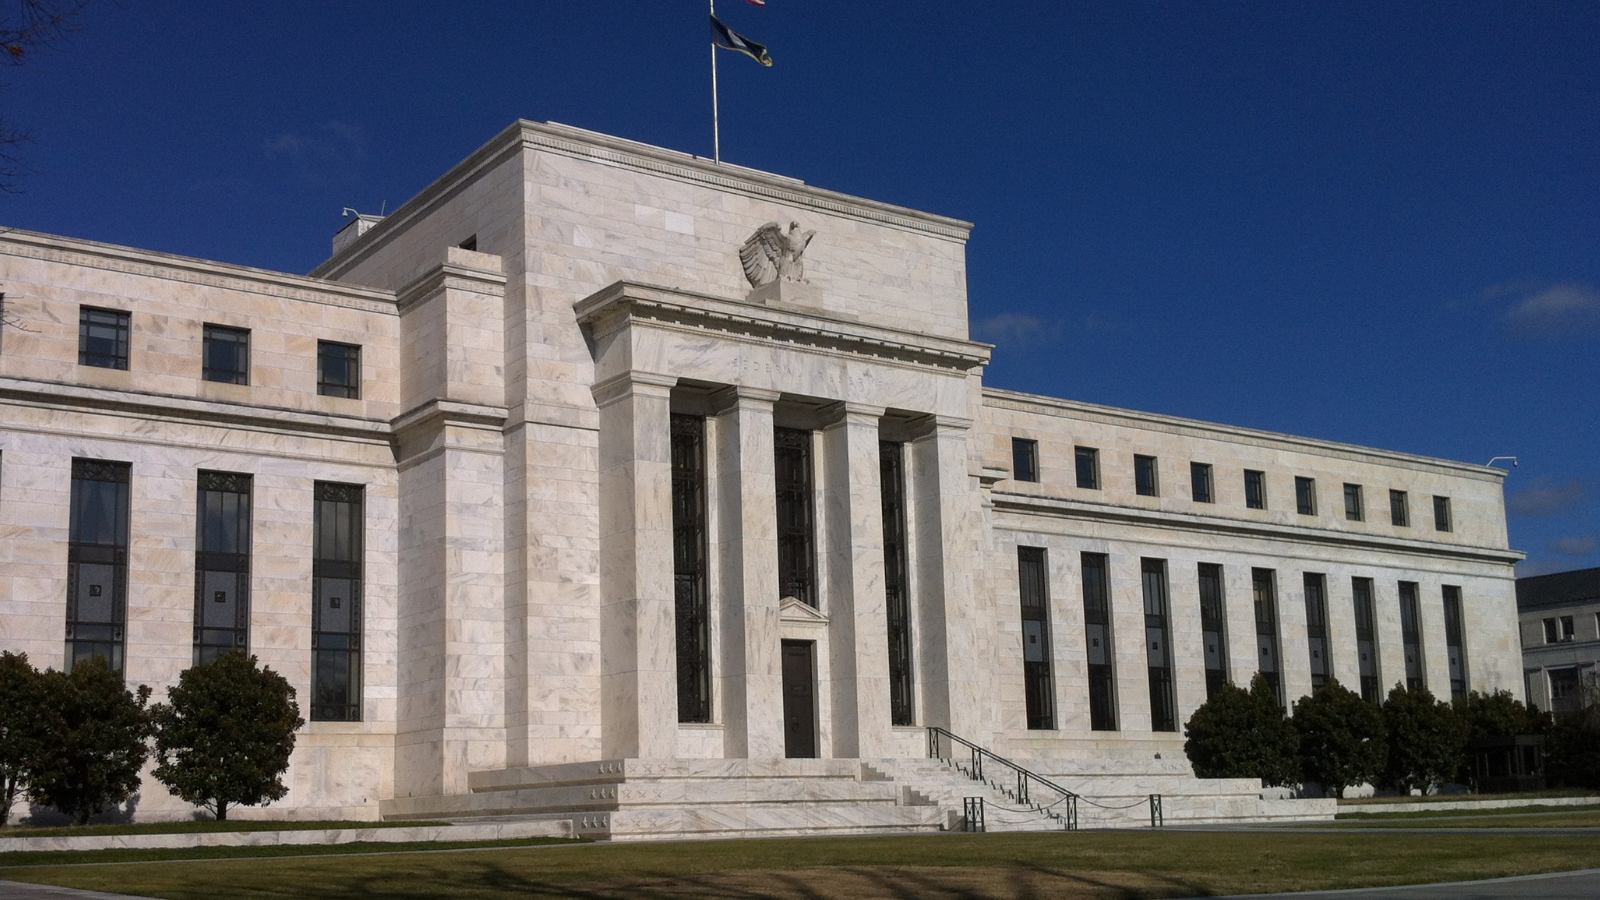 Photo of Federal Reserve Bldg., DC